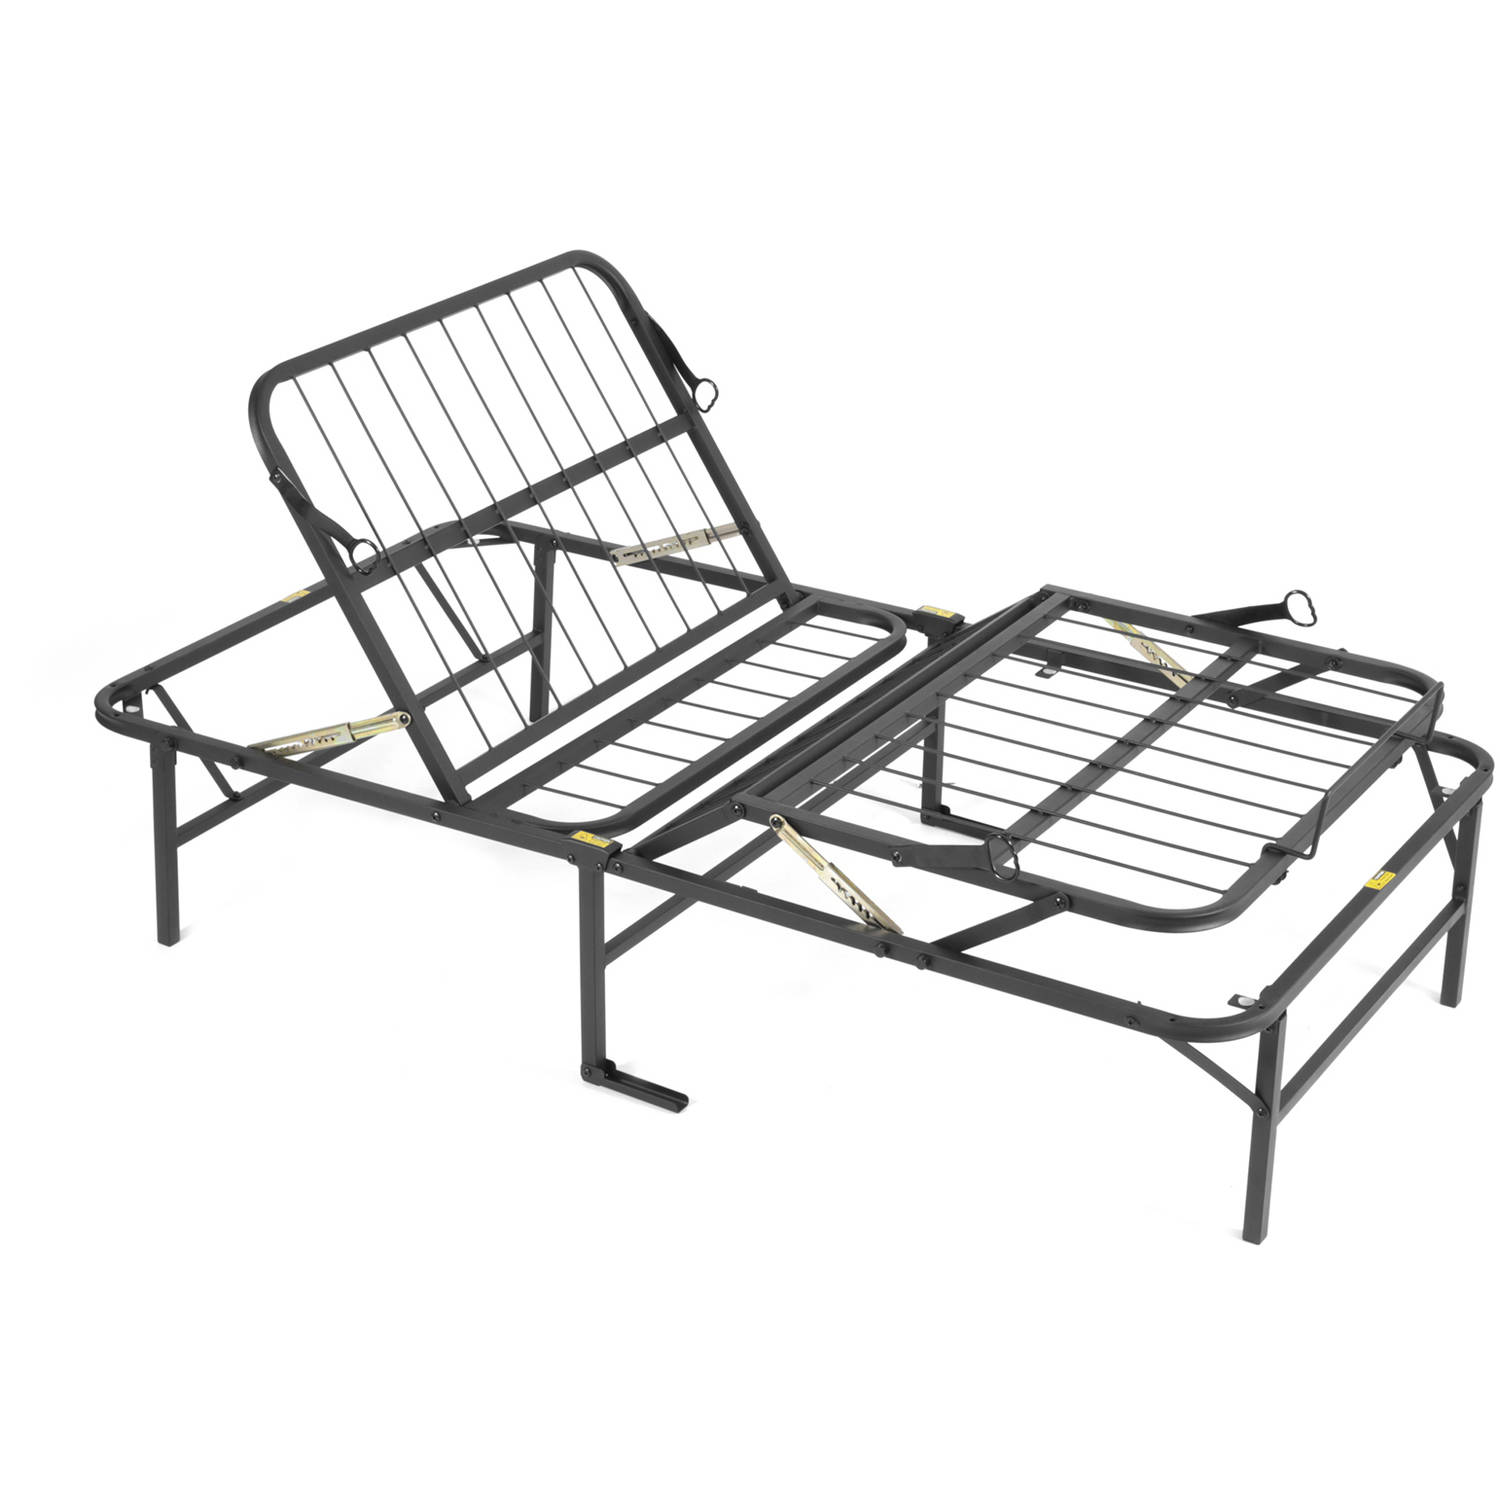 adjustable metal bed frame instructions